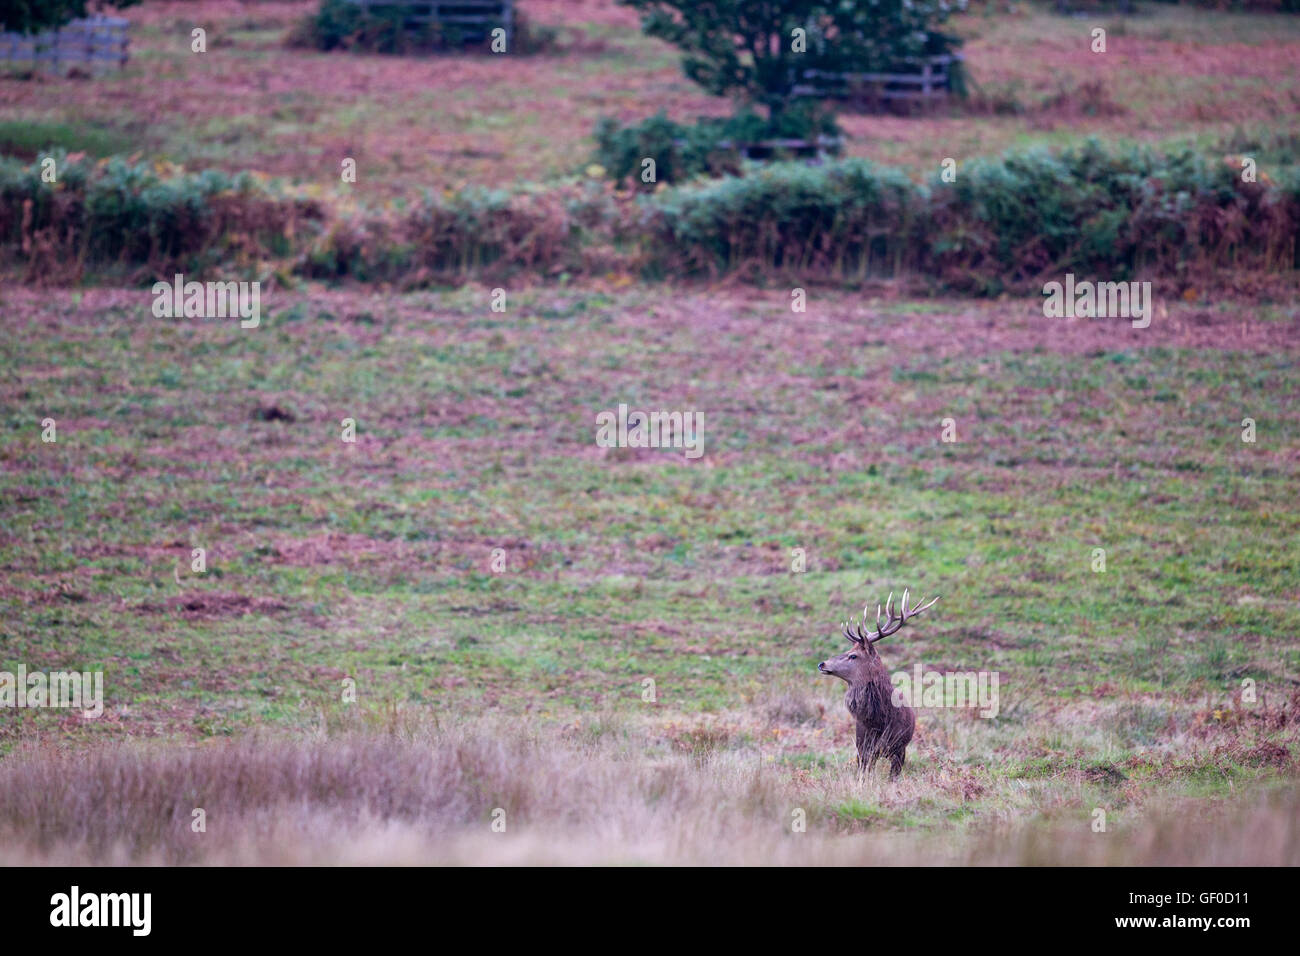 Red Deer Stag in rut at a park - Stock Image